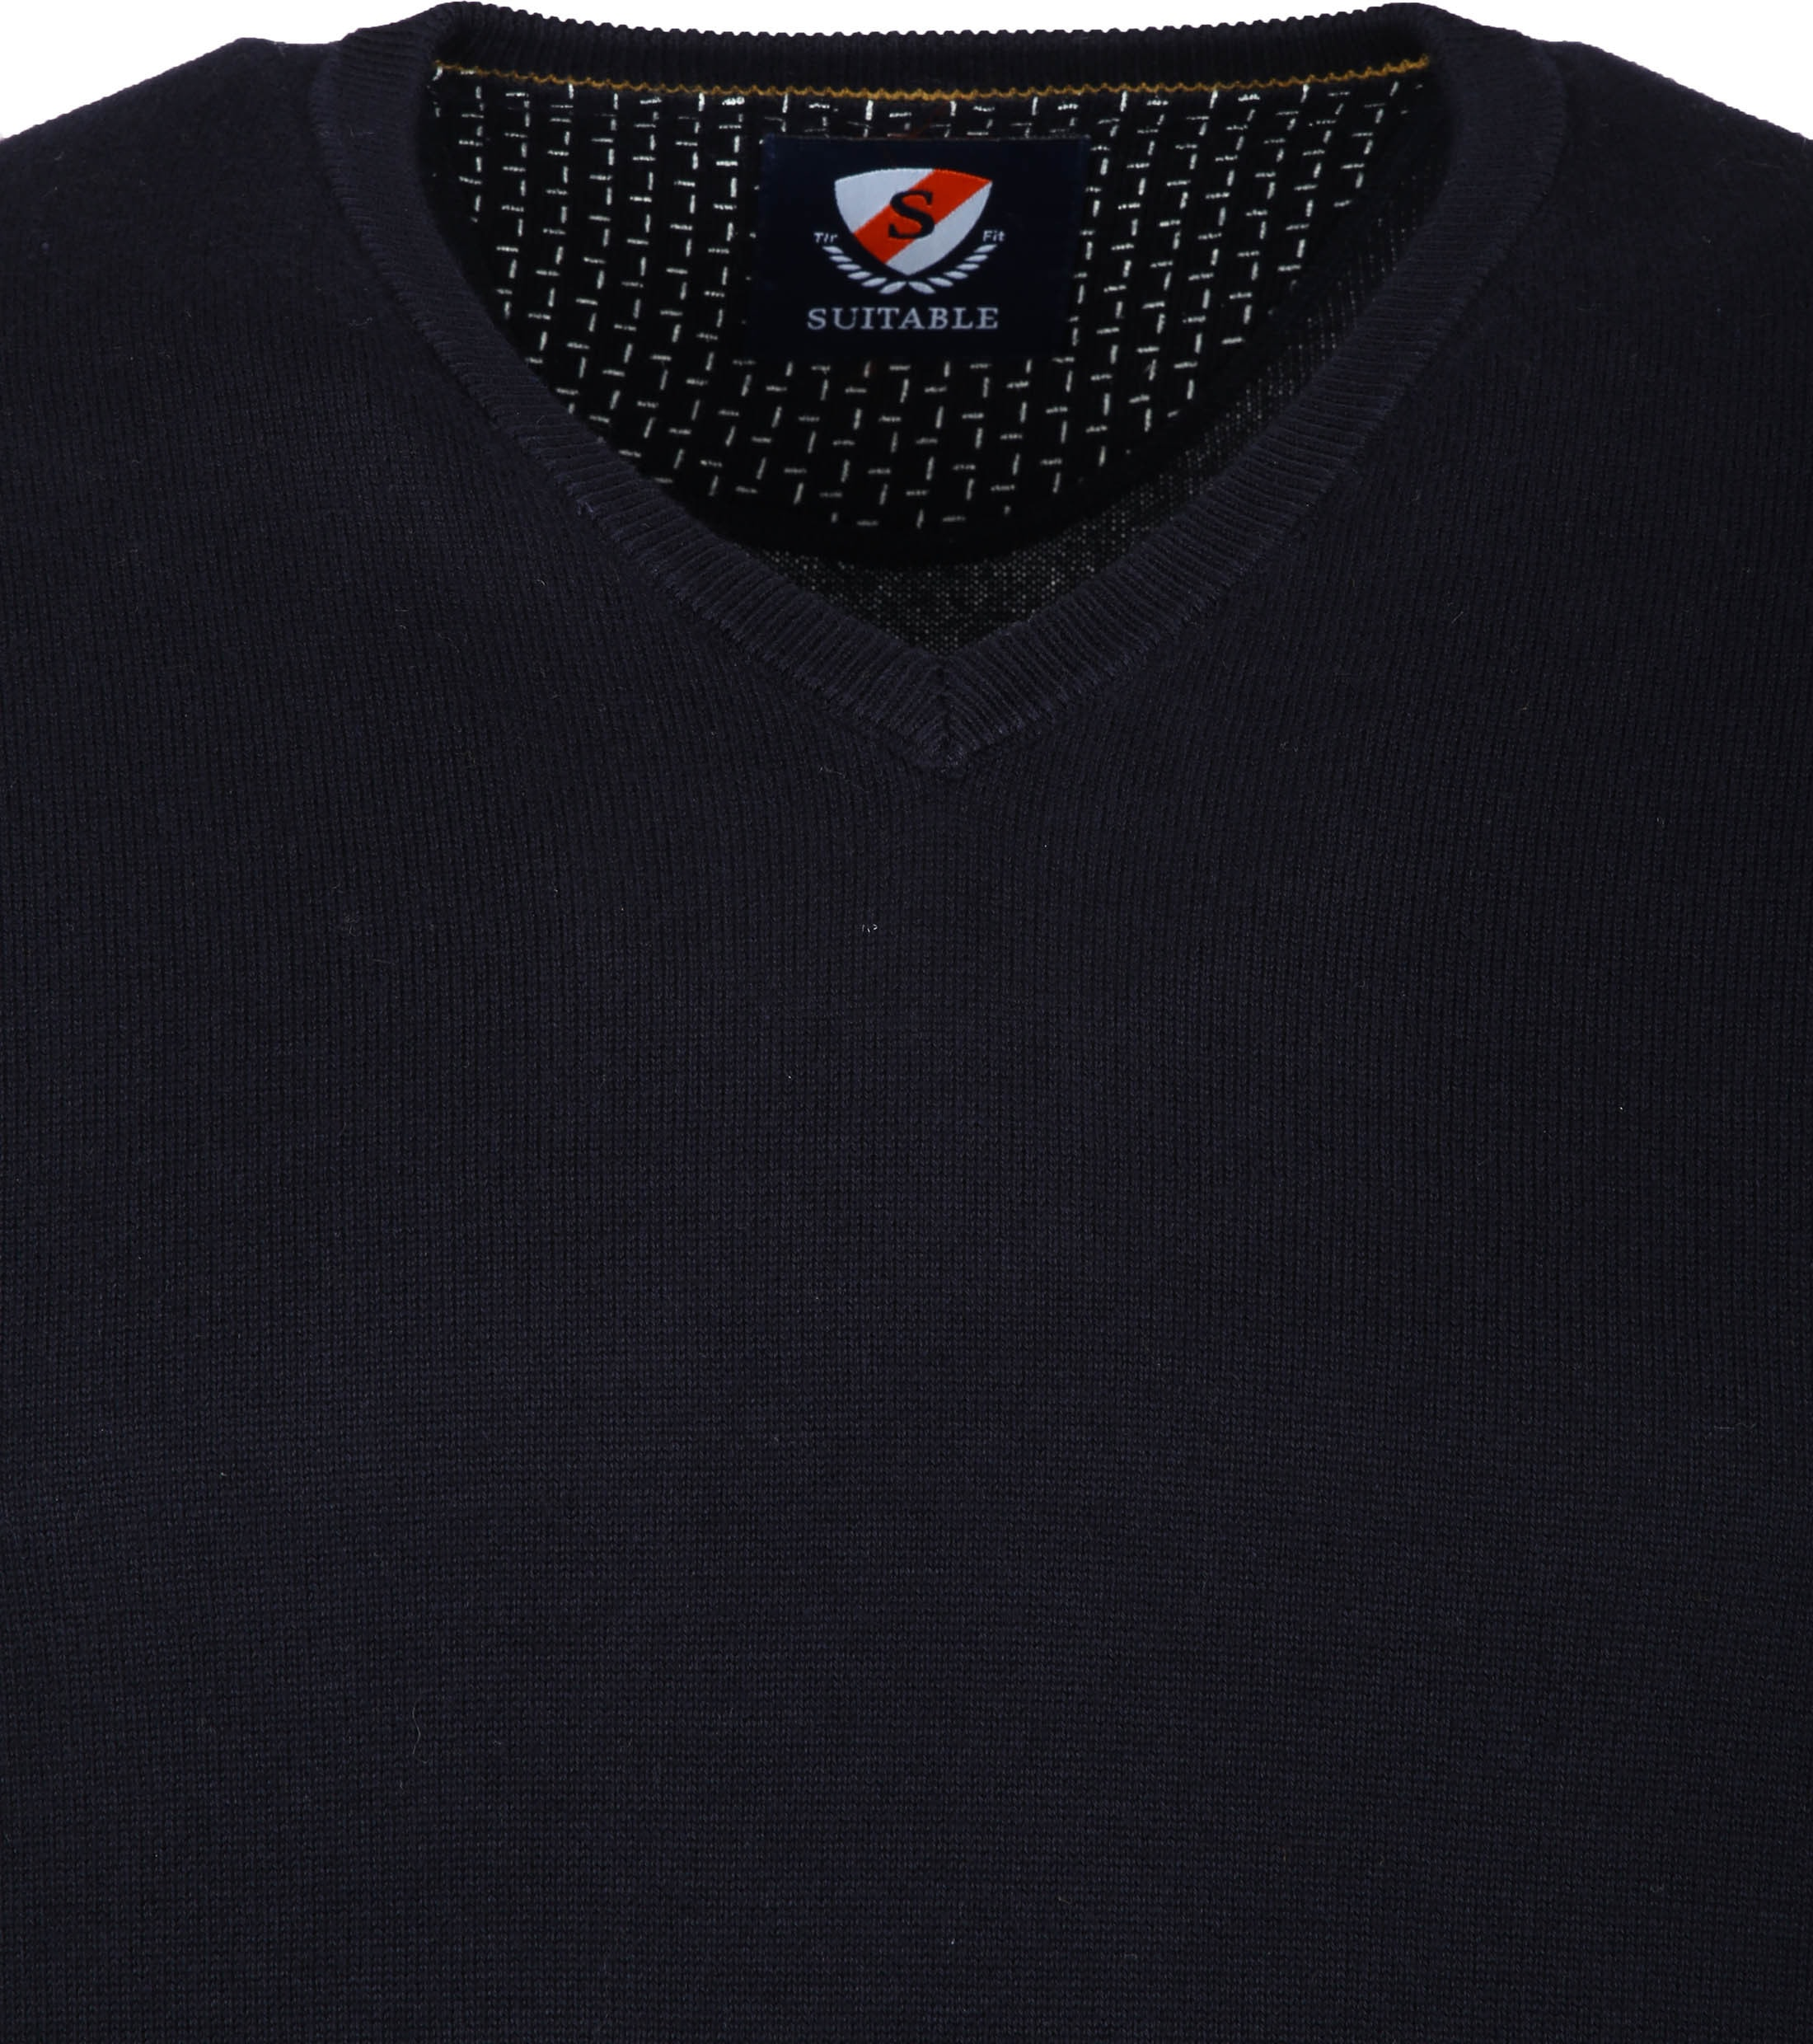 Suitable Vini Pullover Navy foto 1